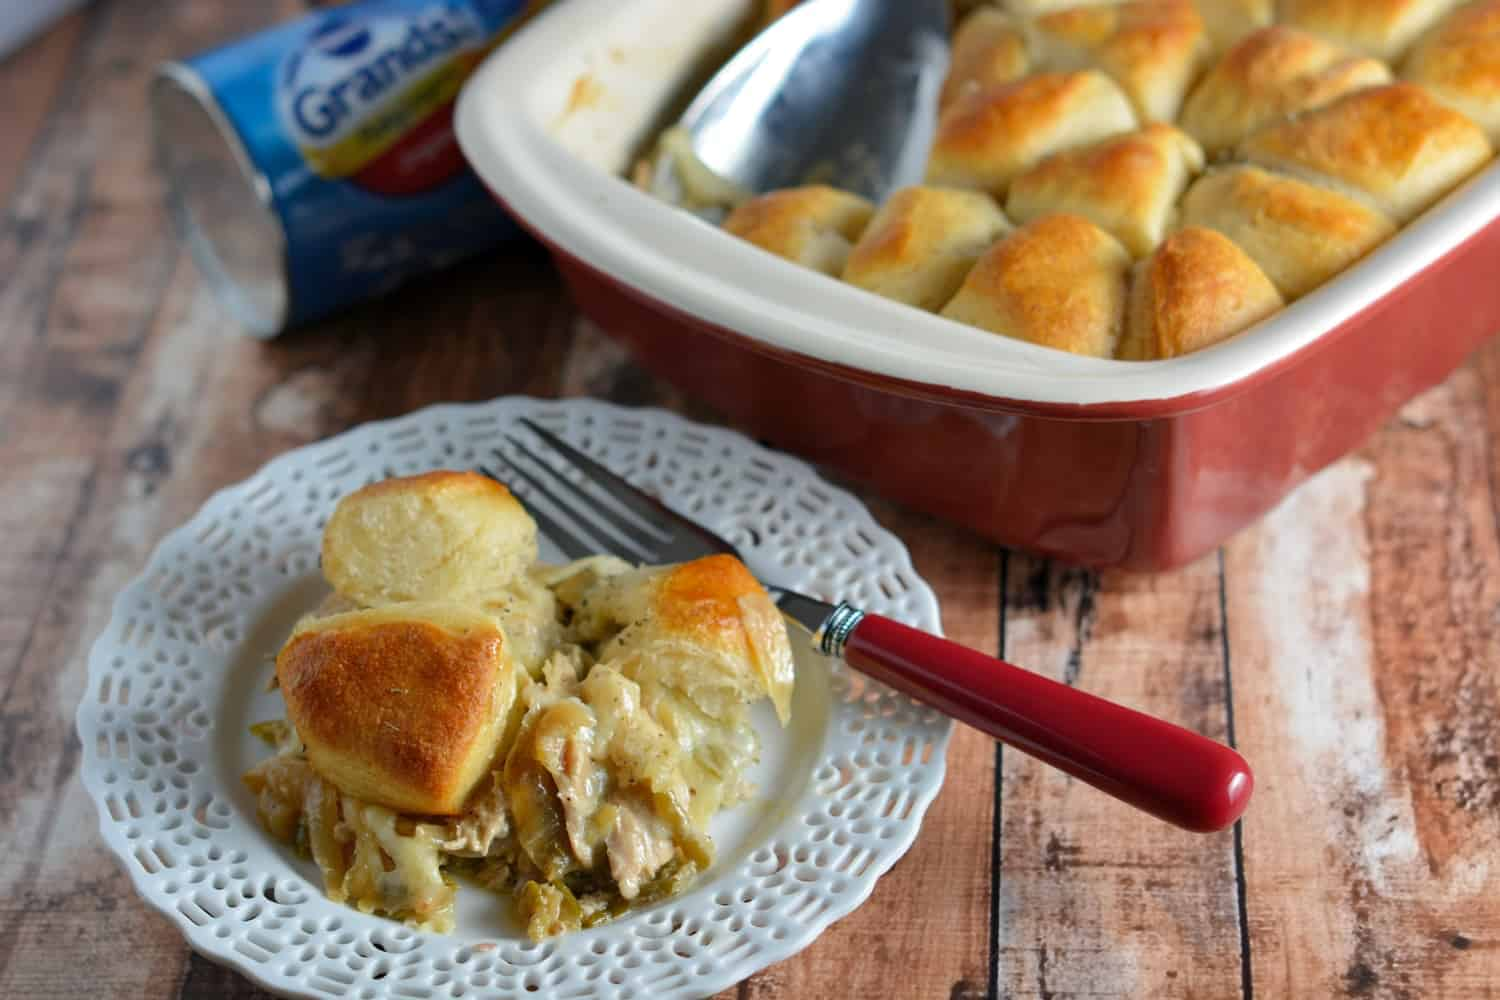 French Onion Chicken Casserole is a one-dish meal that blends tender shredded chicken and green beans in a creamy sauce, topped with Swiss cheese and buttery Grands biscuits. It is soon to be your new family favorite!